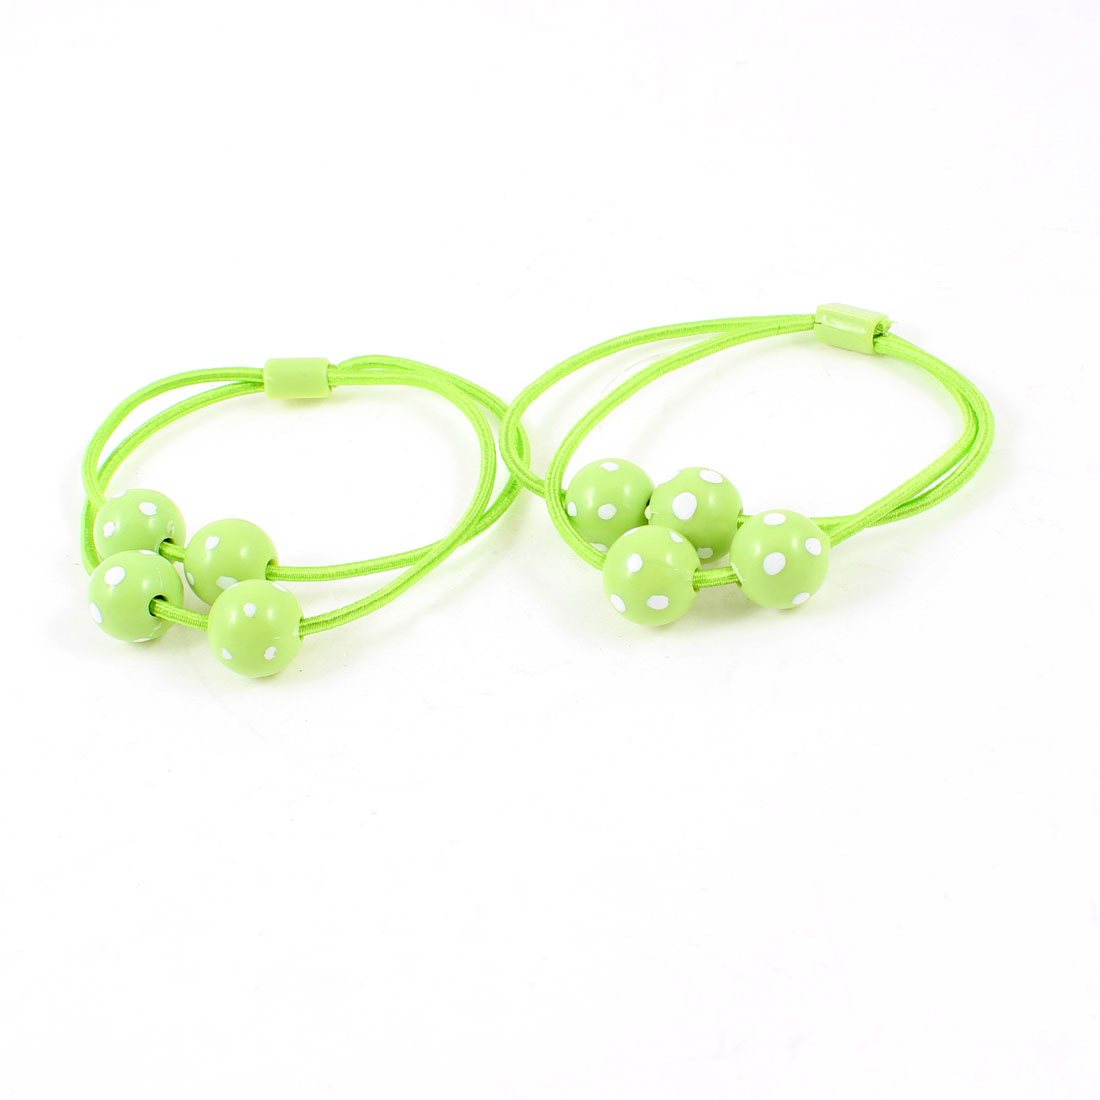 2 Pcs Round Plastic Beads Detail Green Rope Hair Tie Ponytail Holder